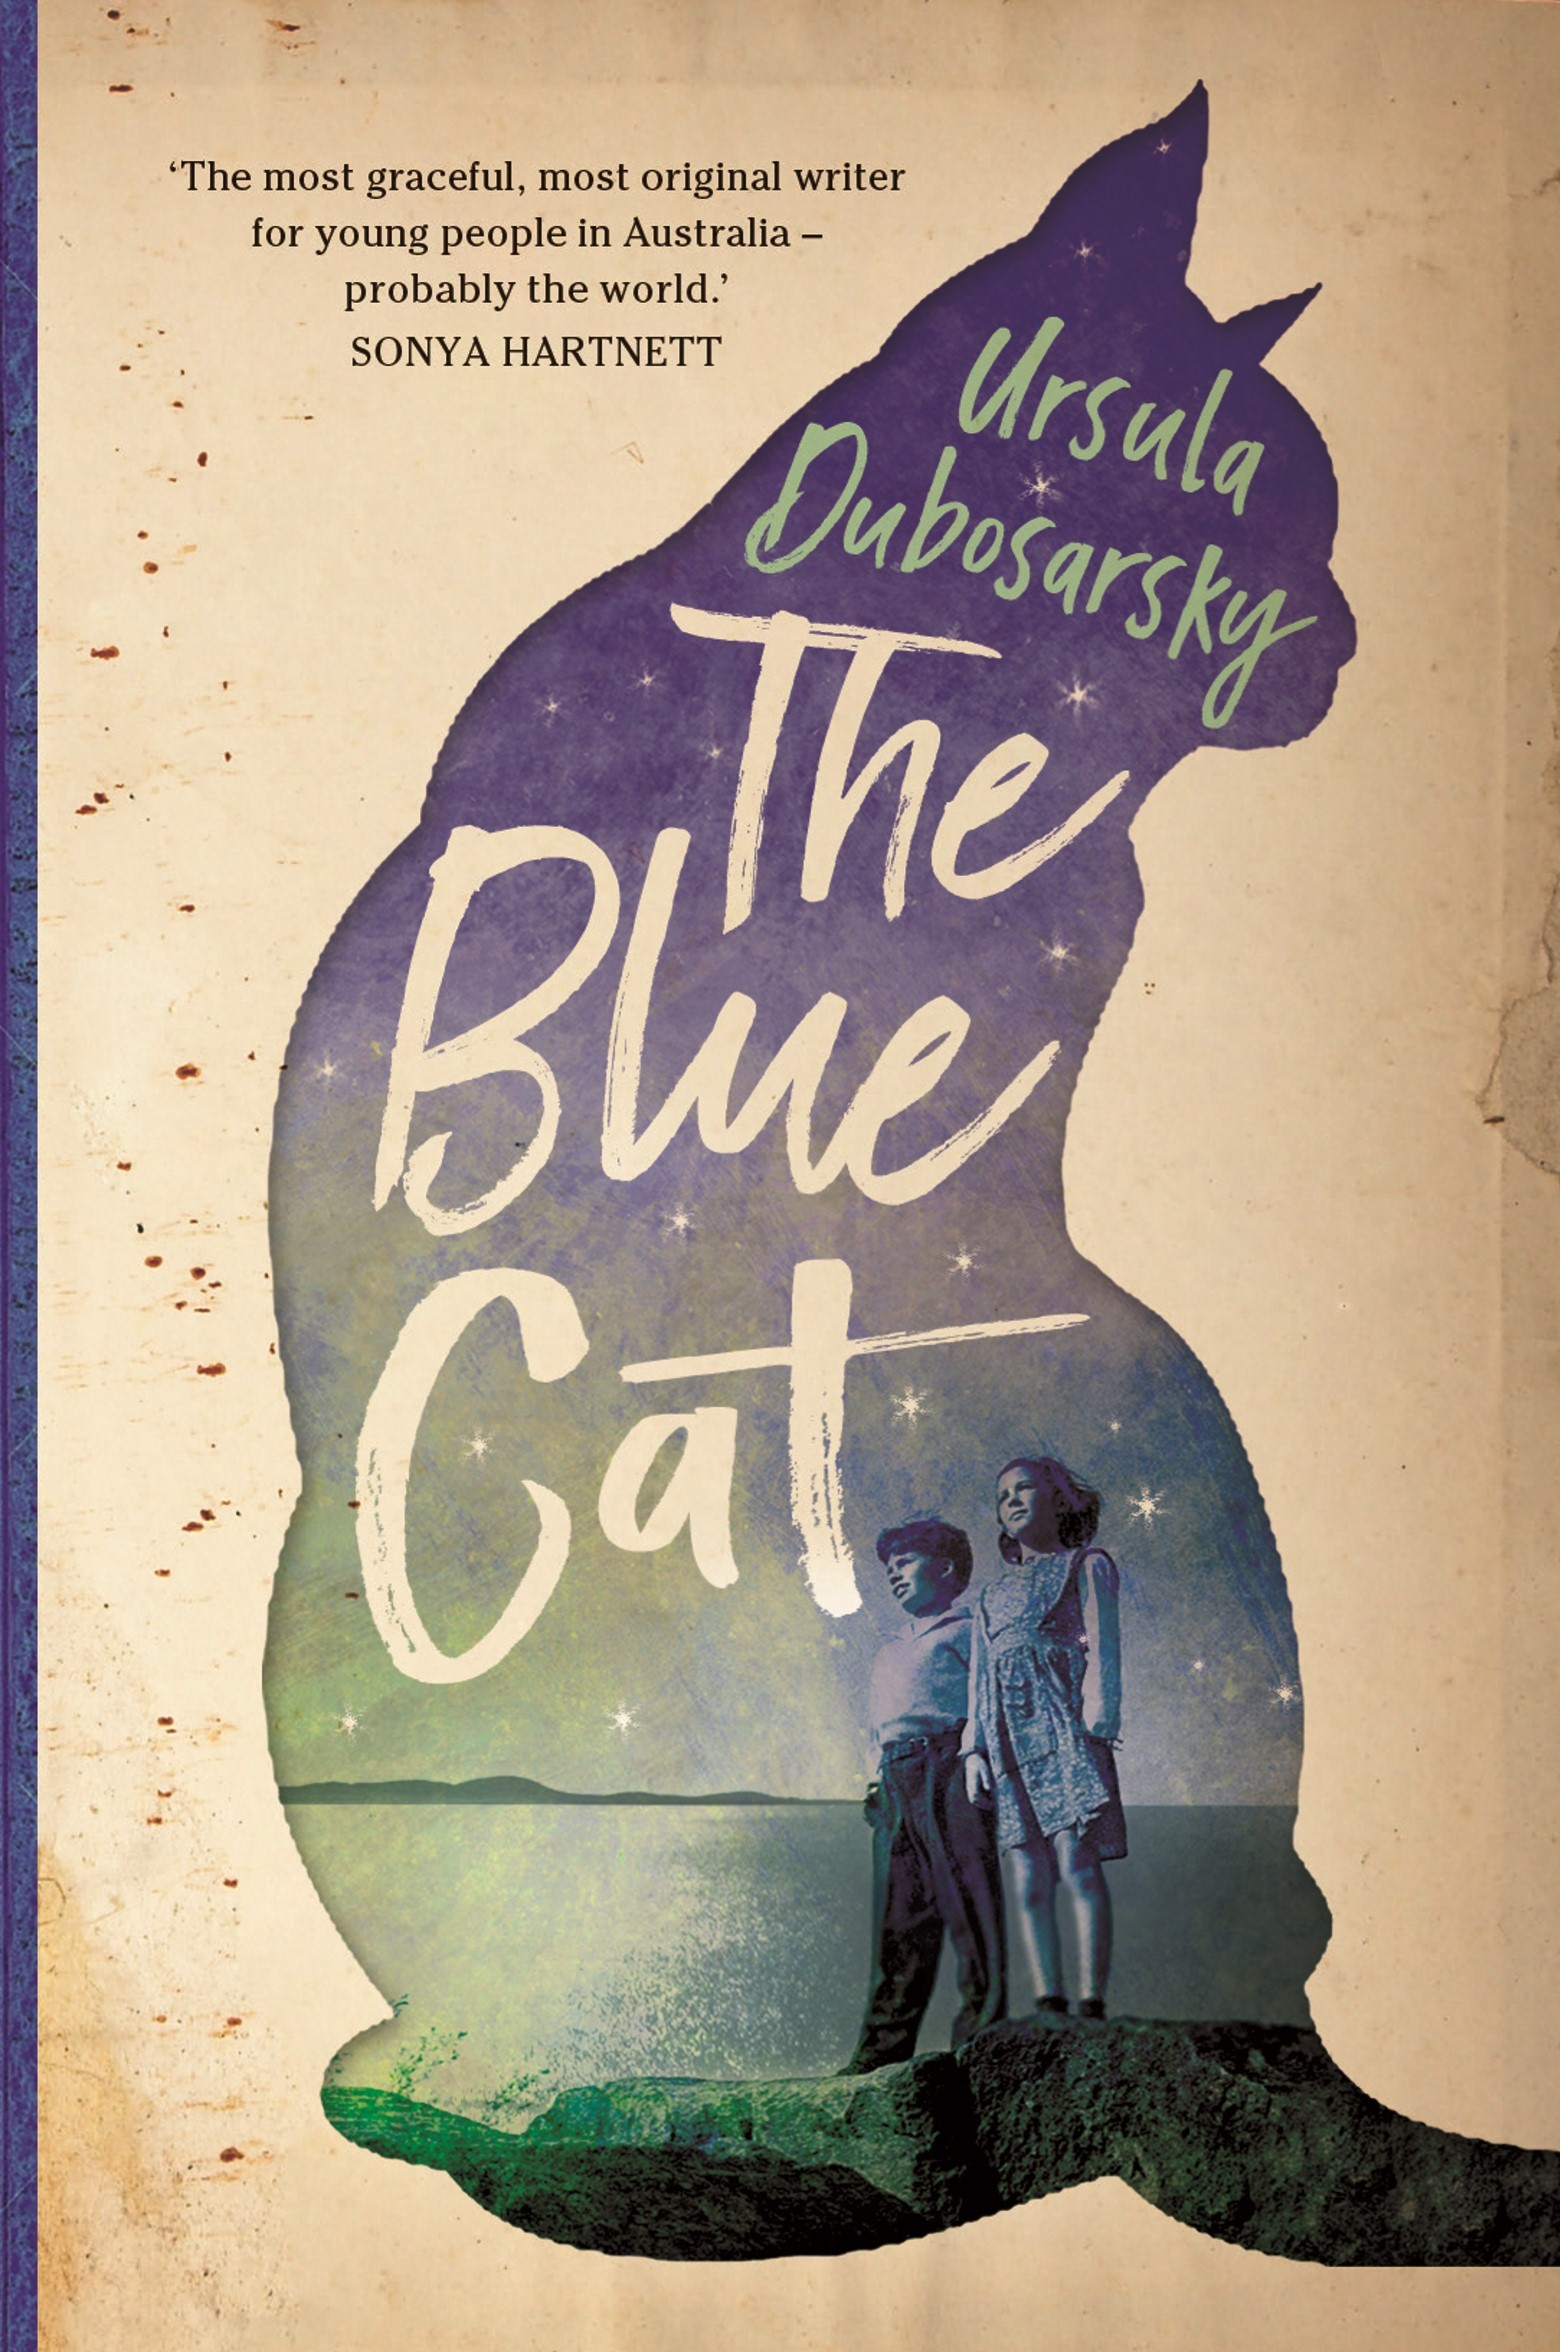 blue cat cover 1.jpg